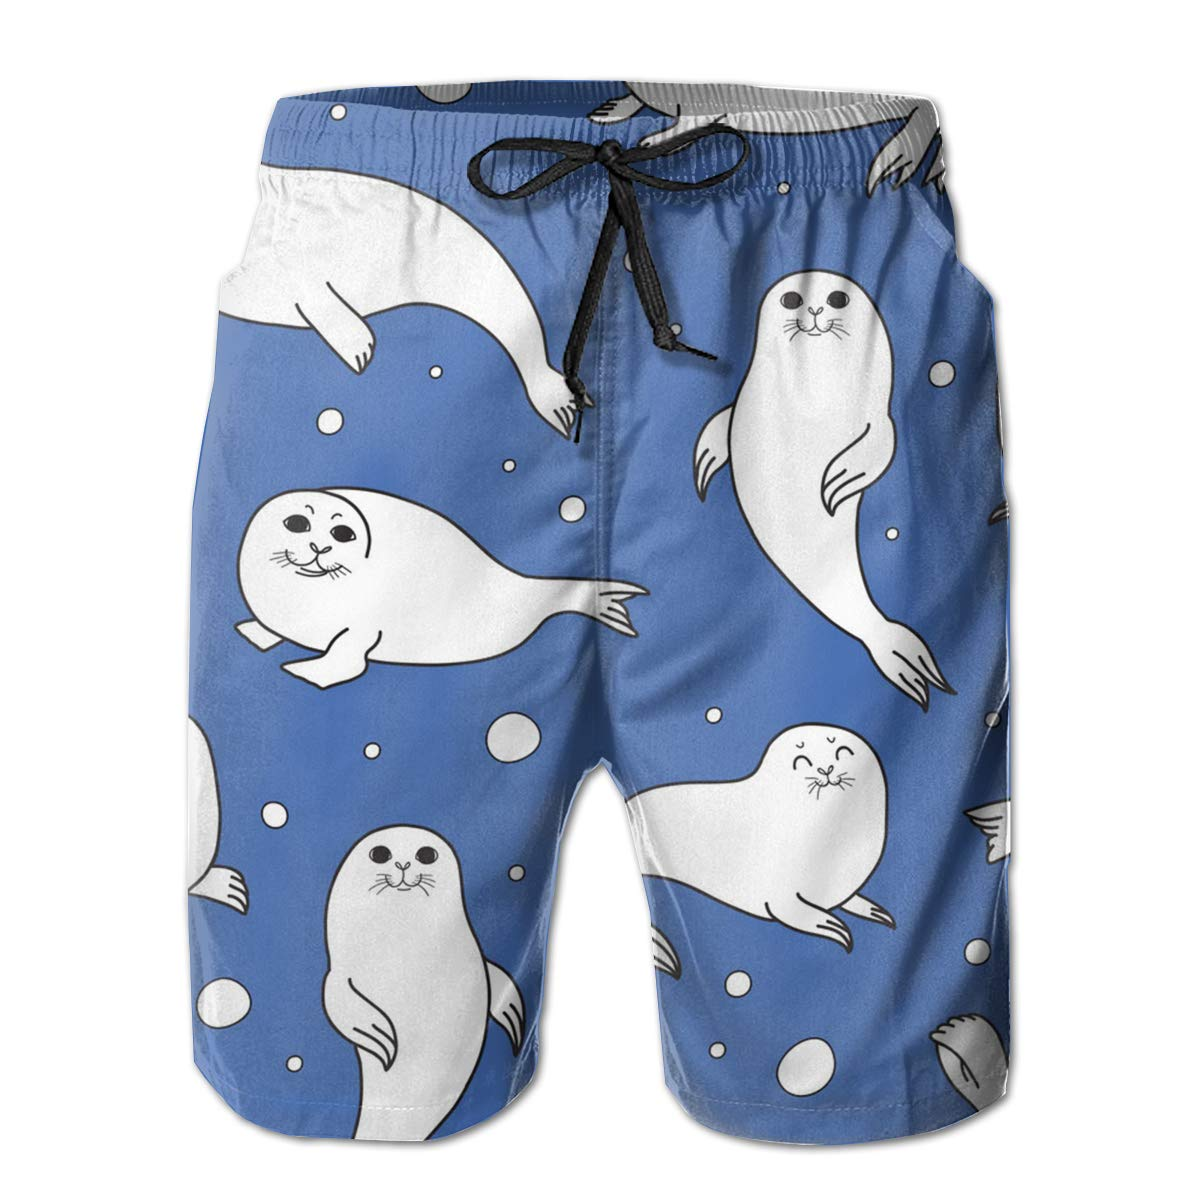 Fancy Illusion Sea Lion Animal Casual Boys Mens Shorts Swim Trunks Boardshorts for Men